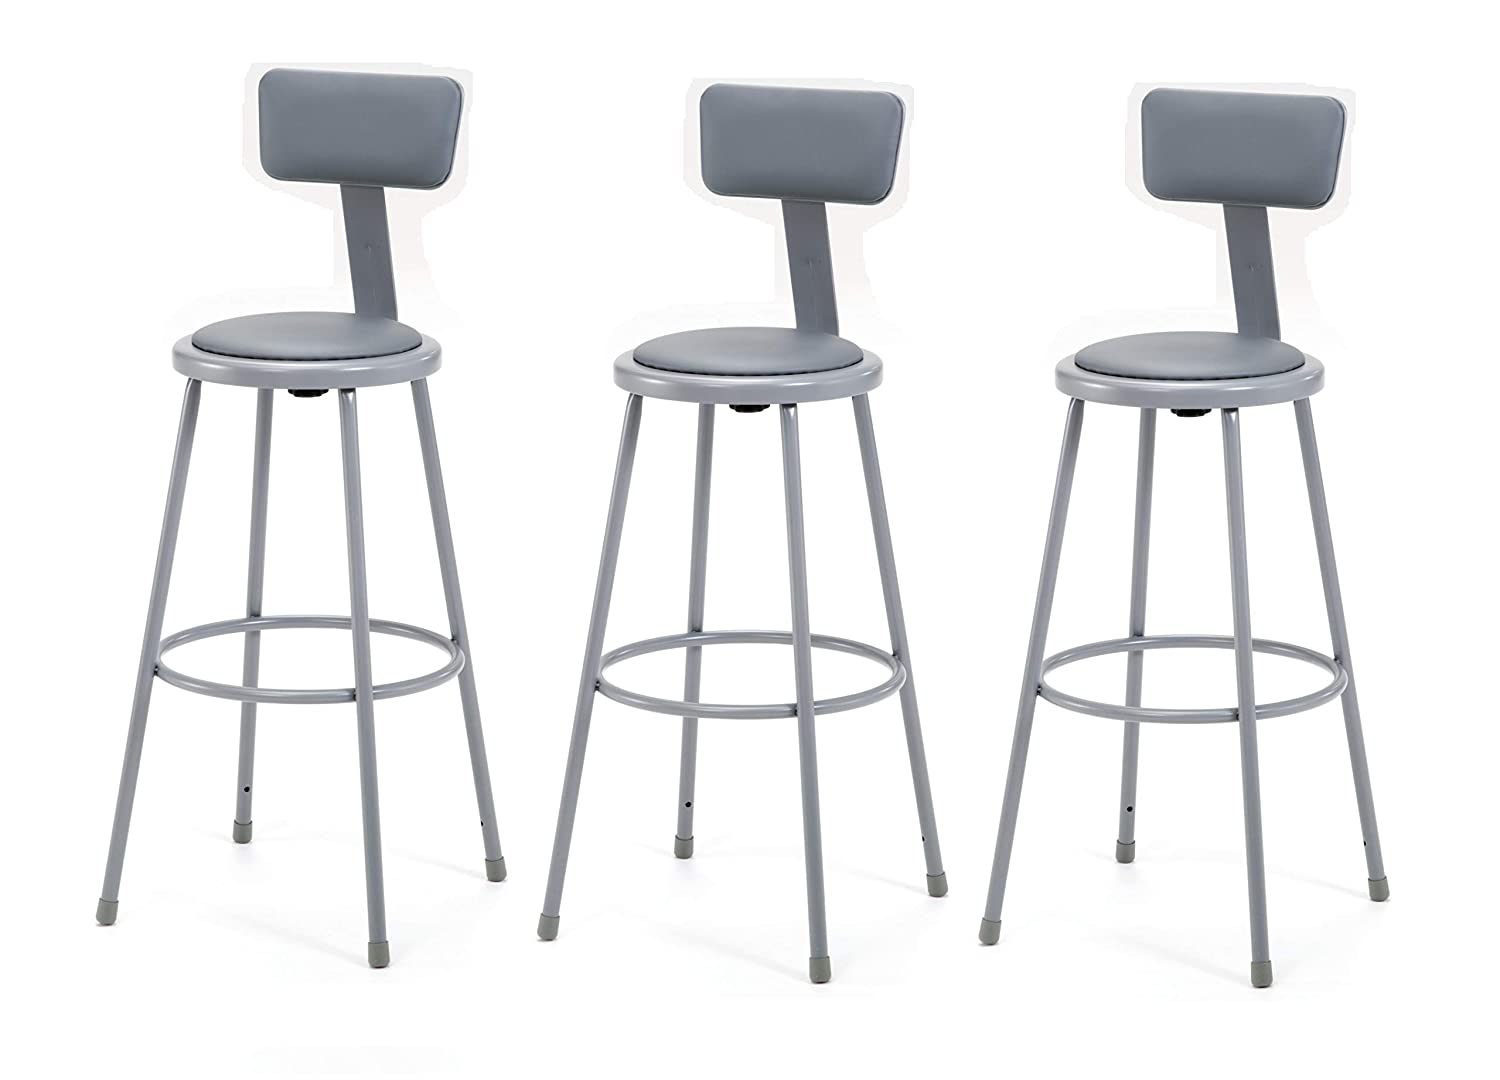 "(3 Pack) NPS 30"" Heavy Duty Vinyl Padded Steel Stool with Backrest, Grey 71fNevLBvlL._SL1500_"